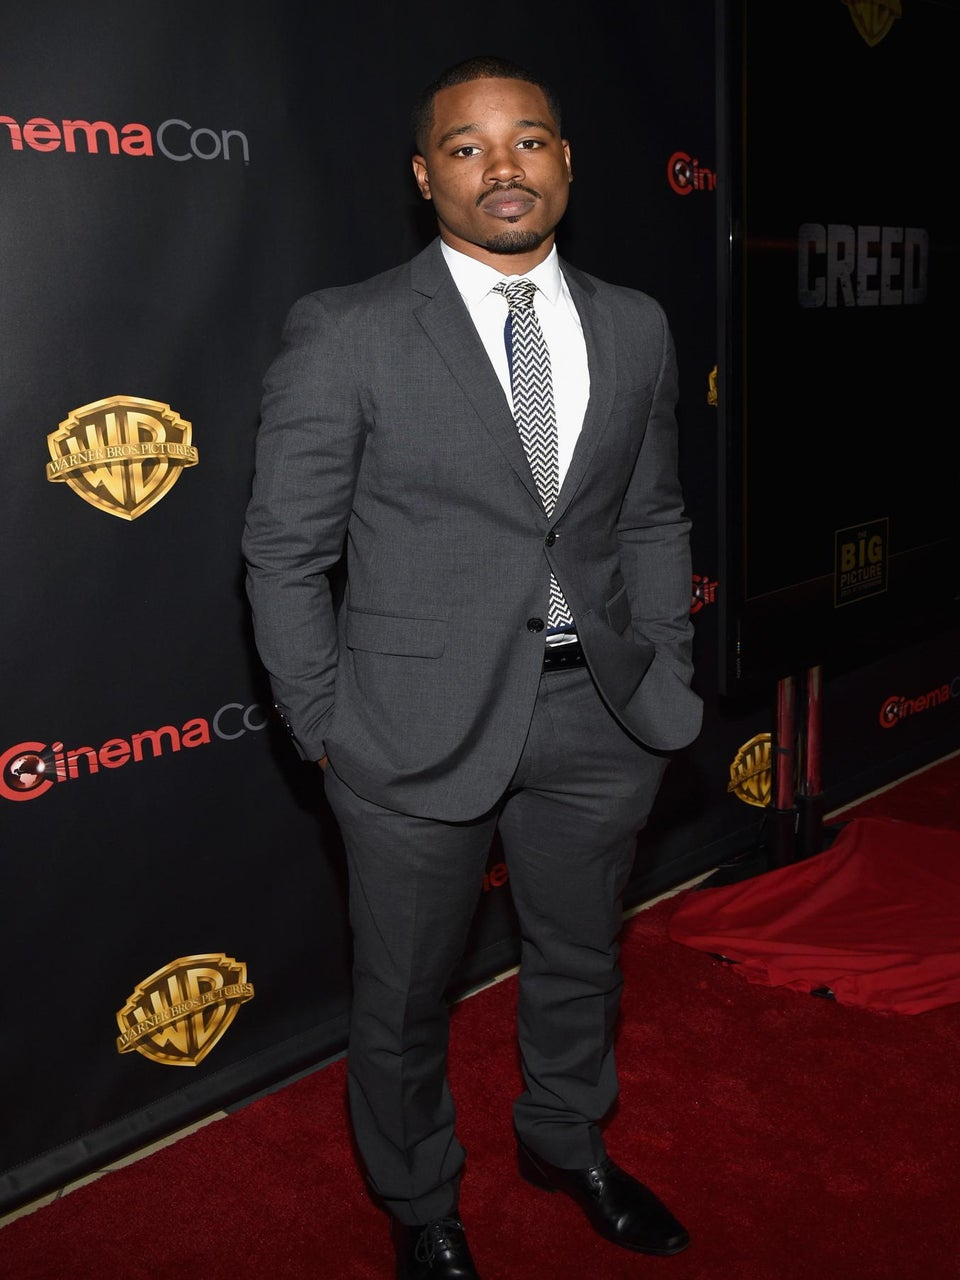 'Creed' Director Ryan Coogler On Board for Upcoming 'Black Panther' Film